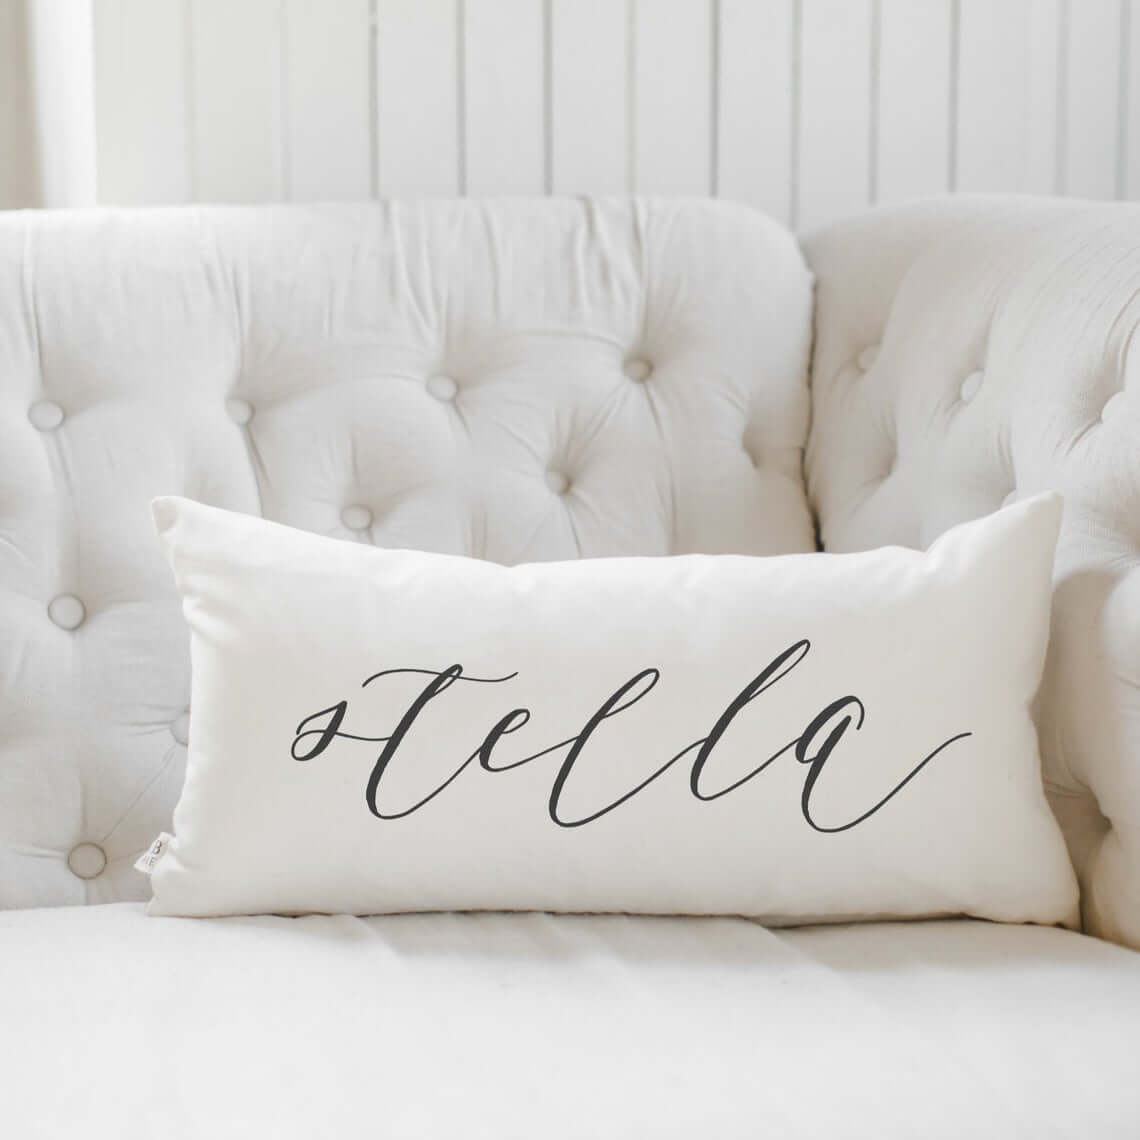 Cozy Pillow for Home Decoration